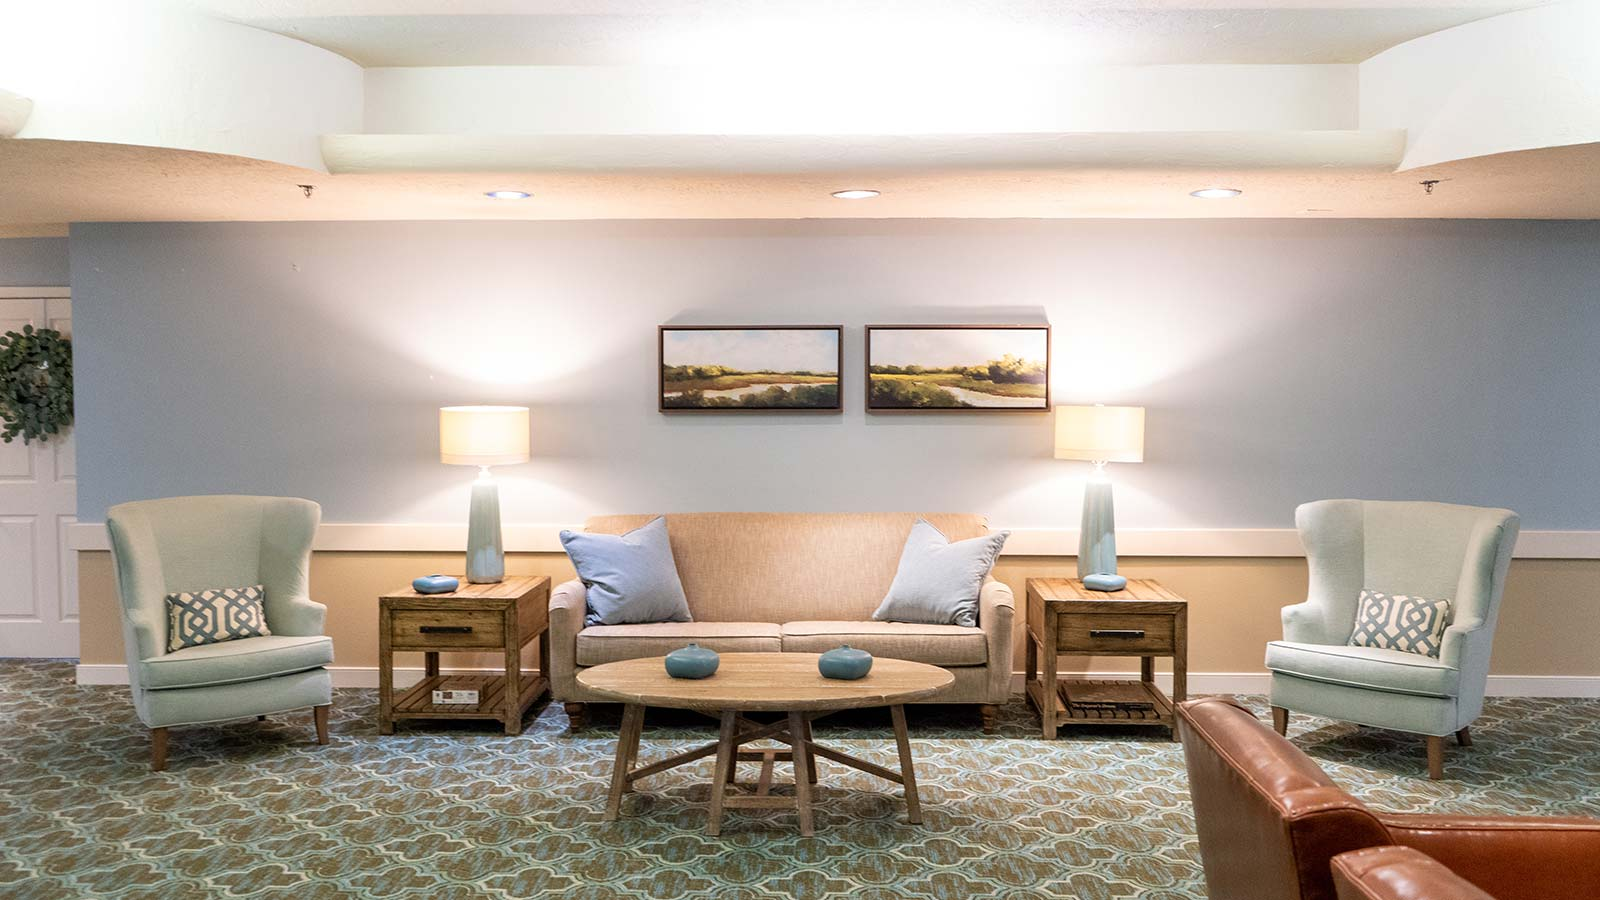 Common area at Heron Club assisted living and memory care in Sarasota Florida